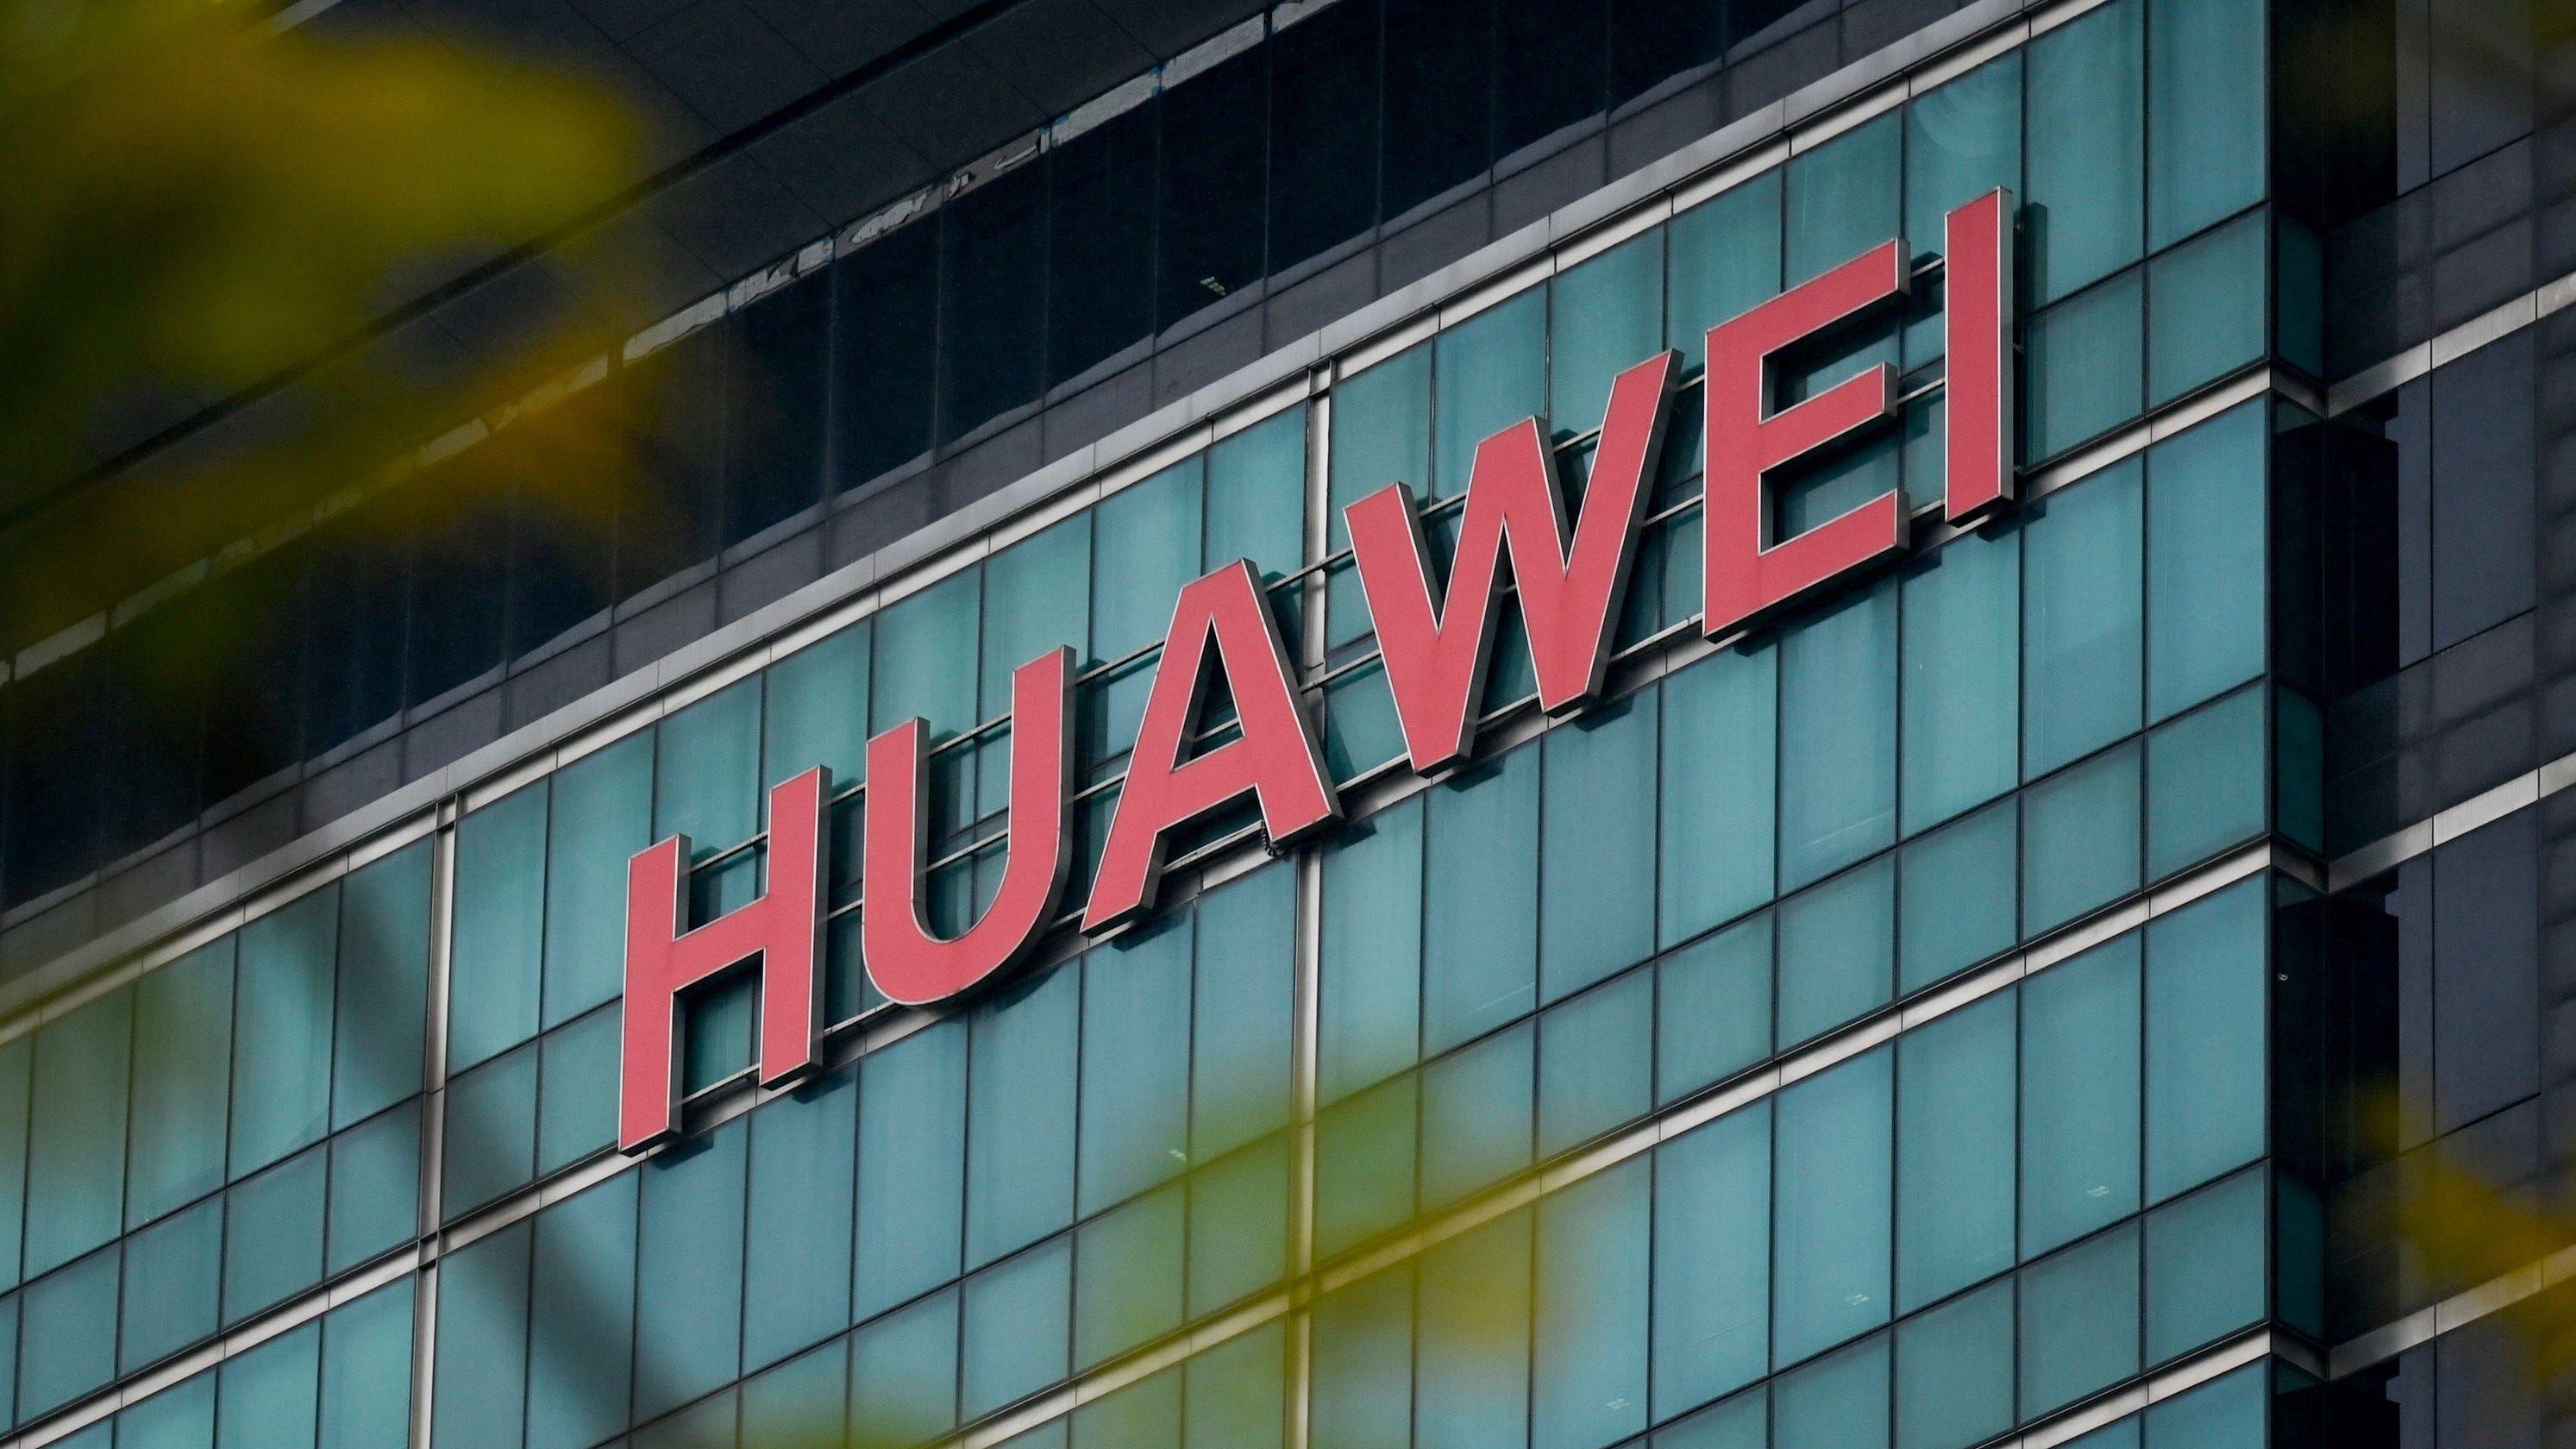 Huawei: Why is it facing sanctions, and who will get hurt most?